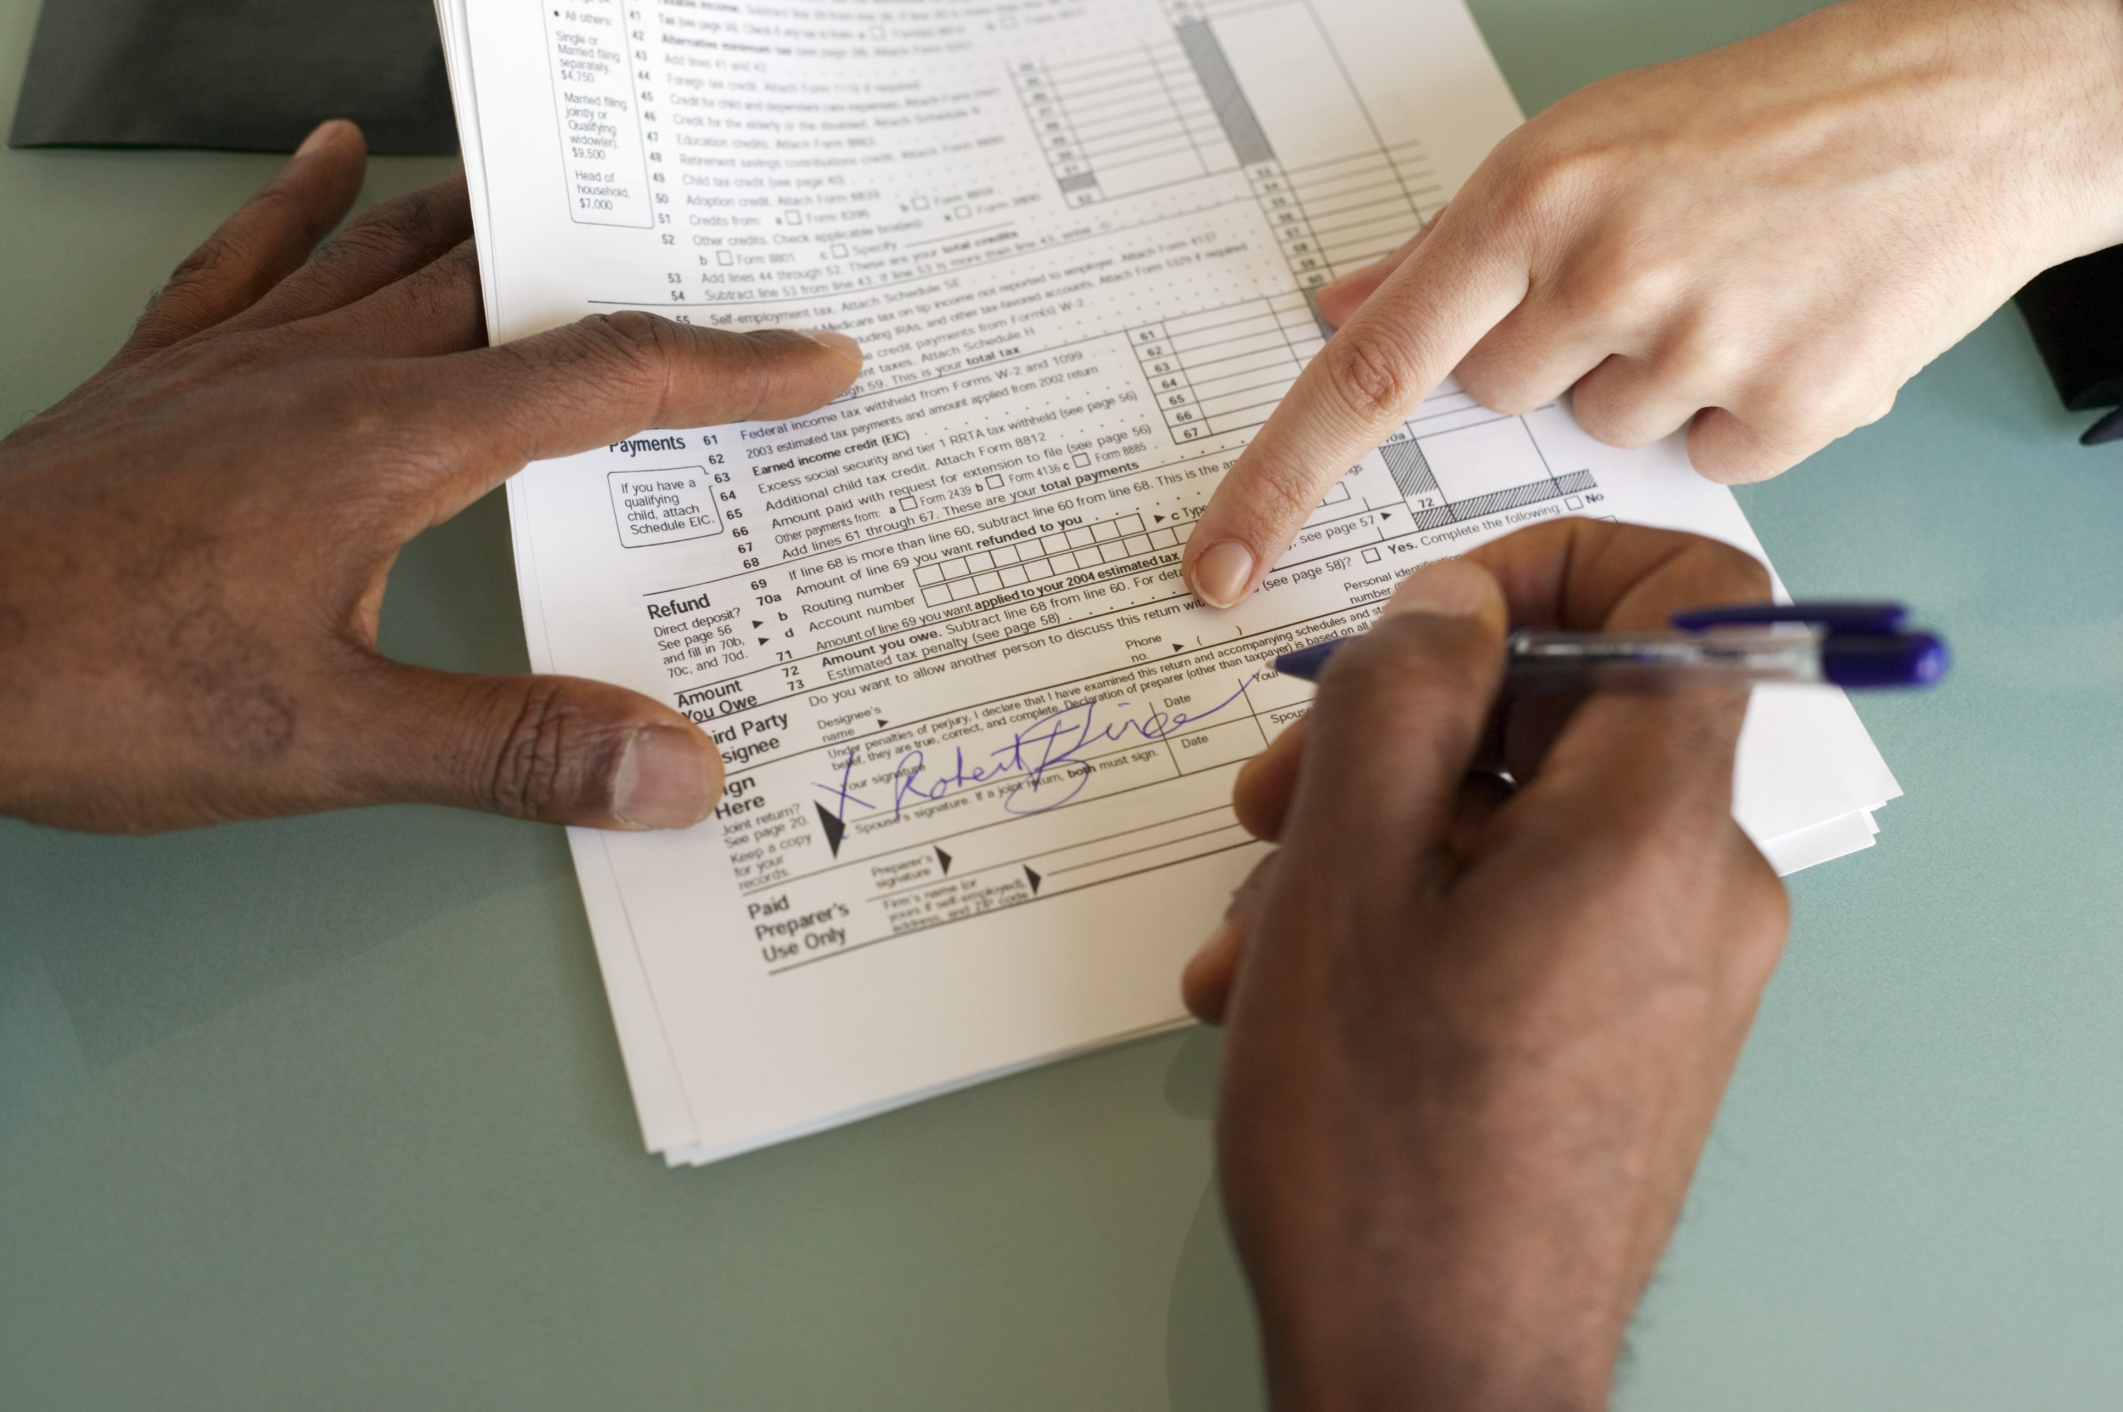 Do You Have to File Taxes If You Make Less Than $1000?